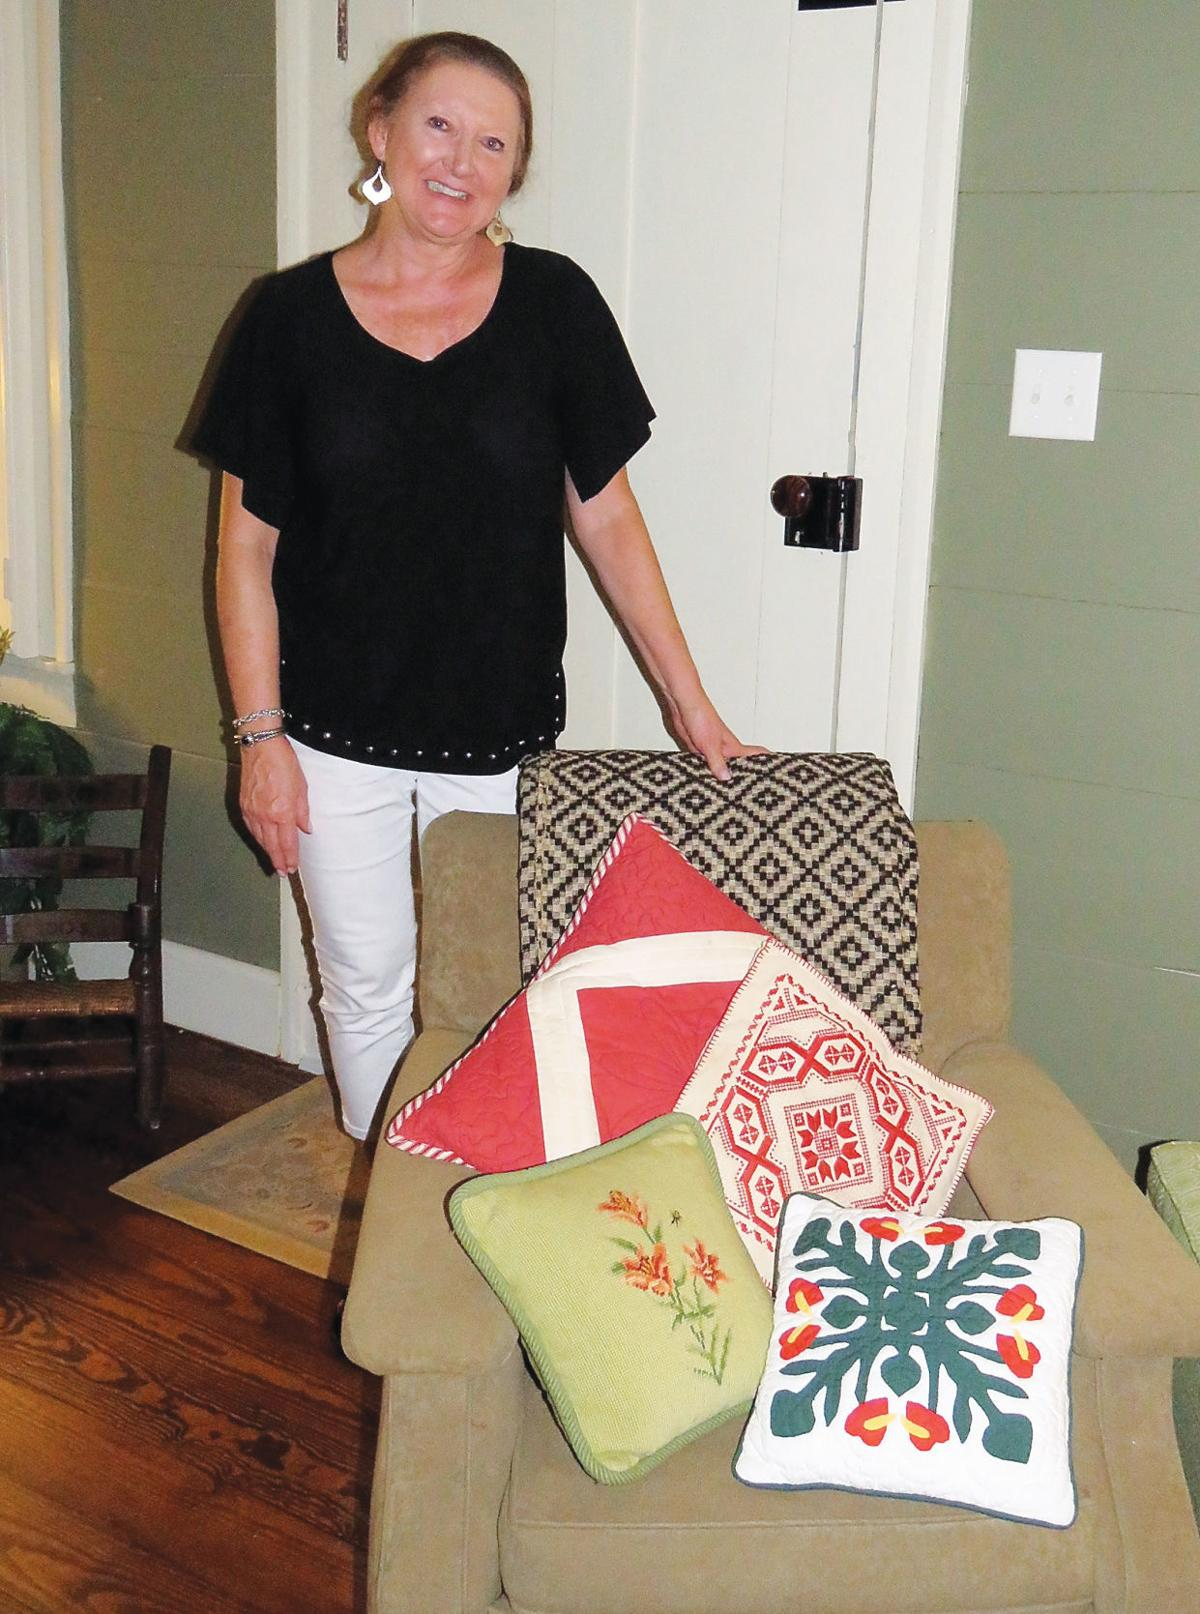 Cindy Benefield stands with an assortment of items